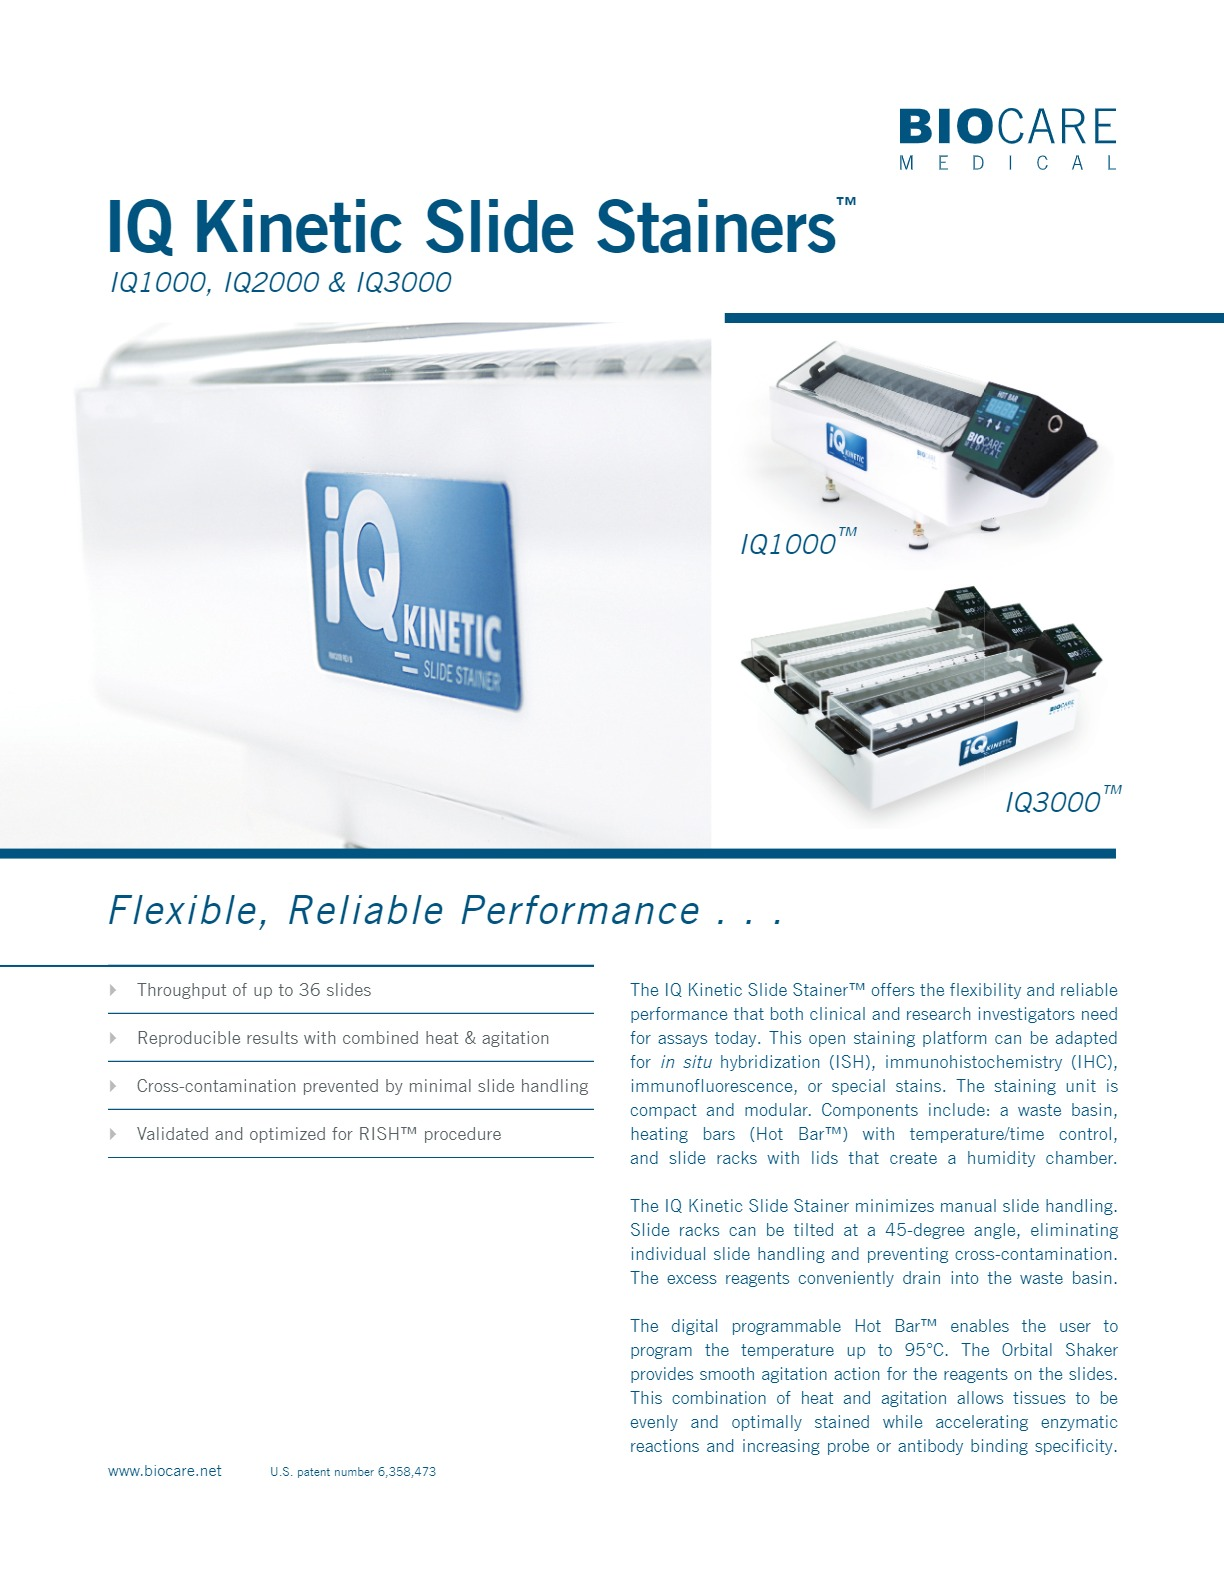 IQ Kinetic Slide Stainers™